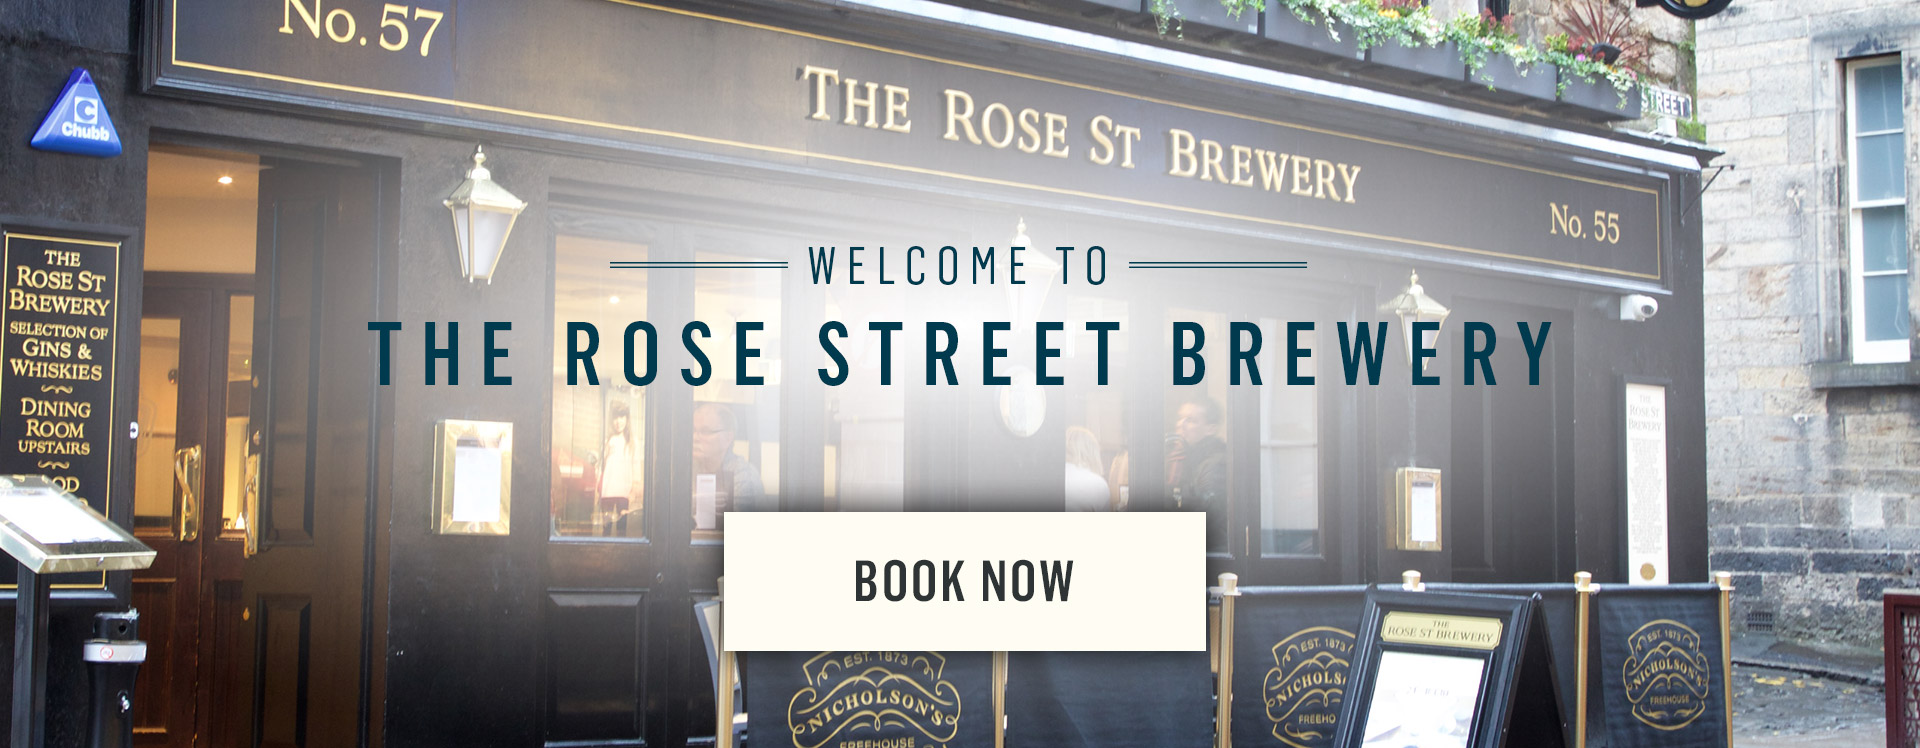 Welcome to Rose Street Brewery - Book Now